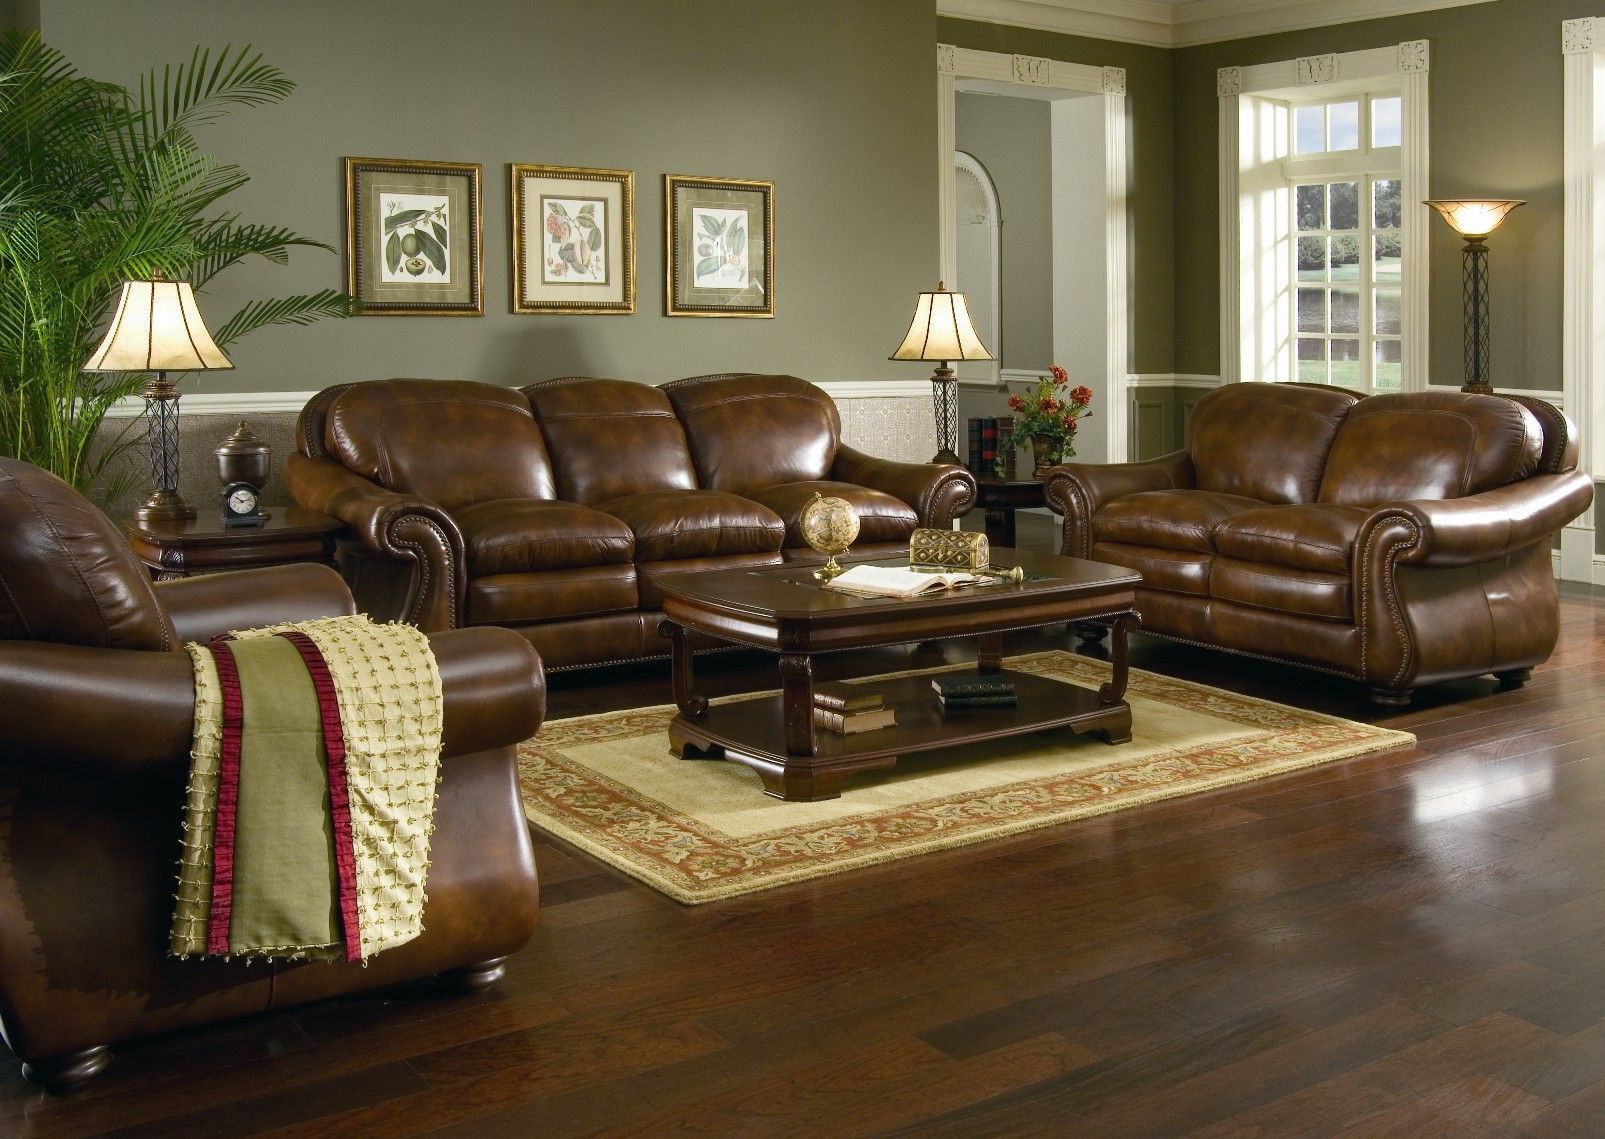 Room color ideas for living room - Brown Leather Sofa Set For Living Room With Dark Hardwood Floors